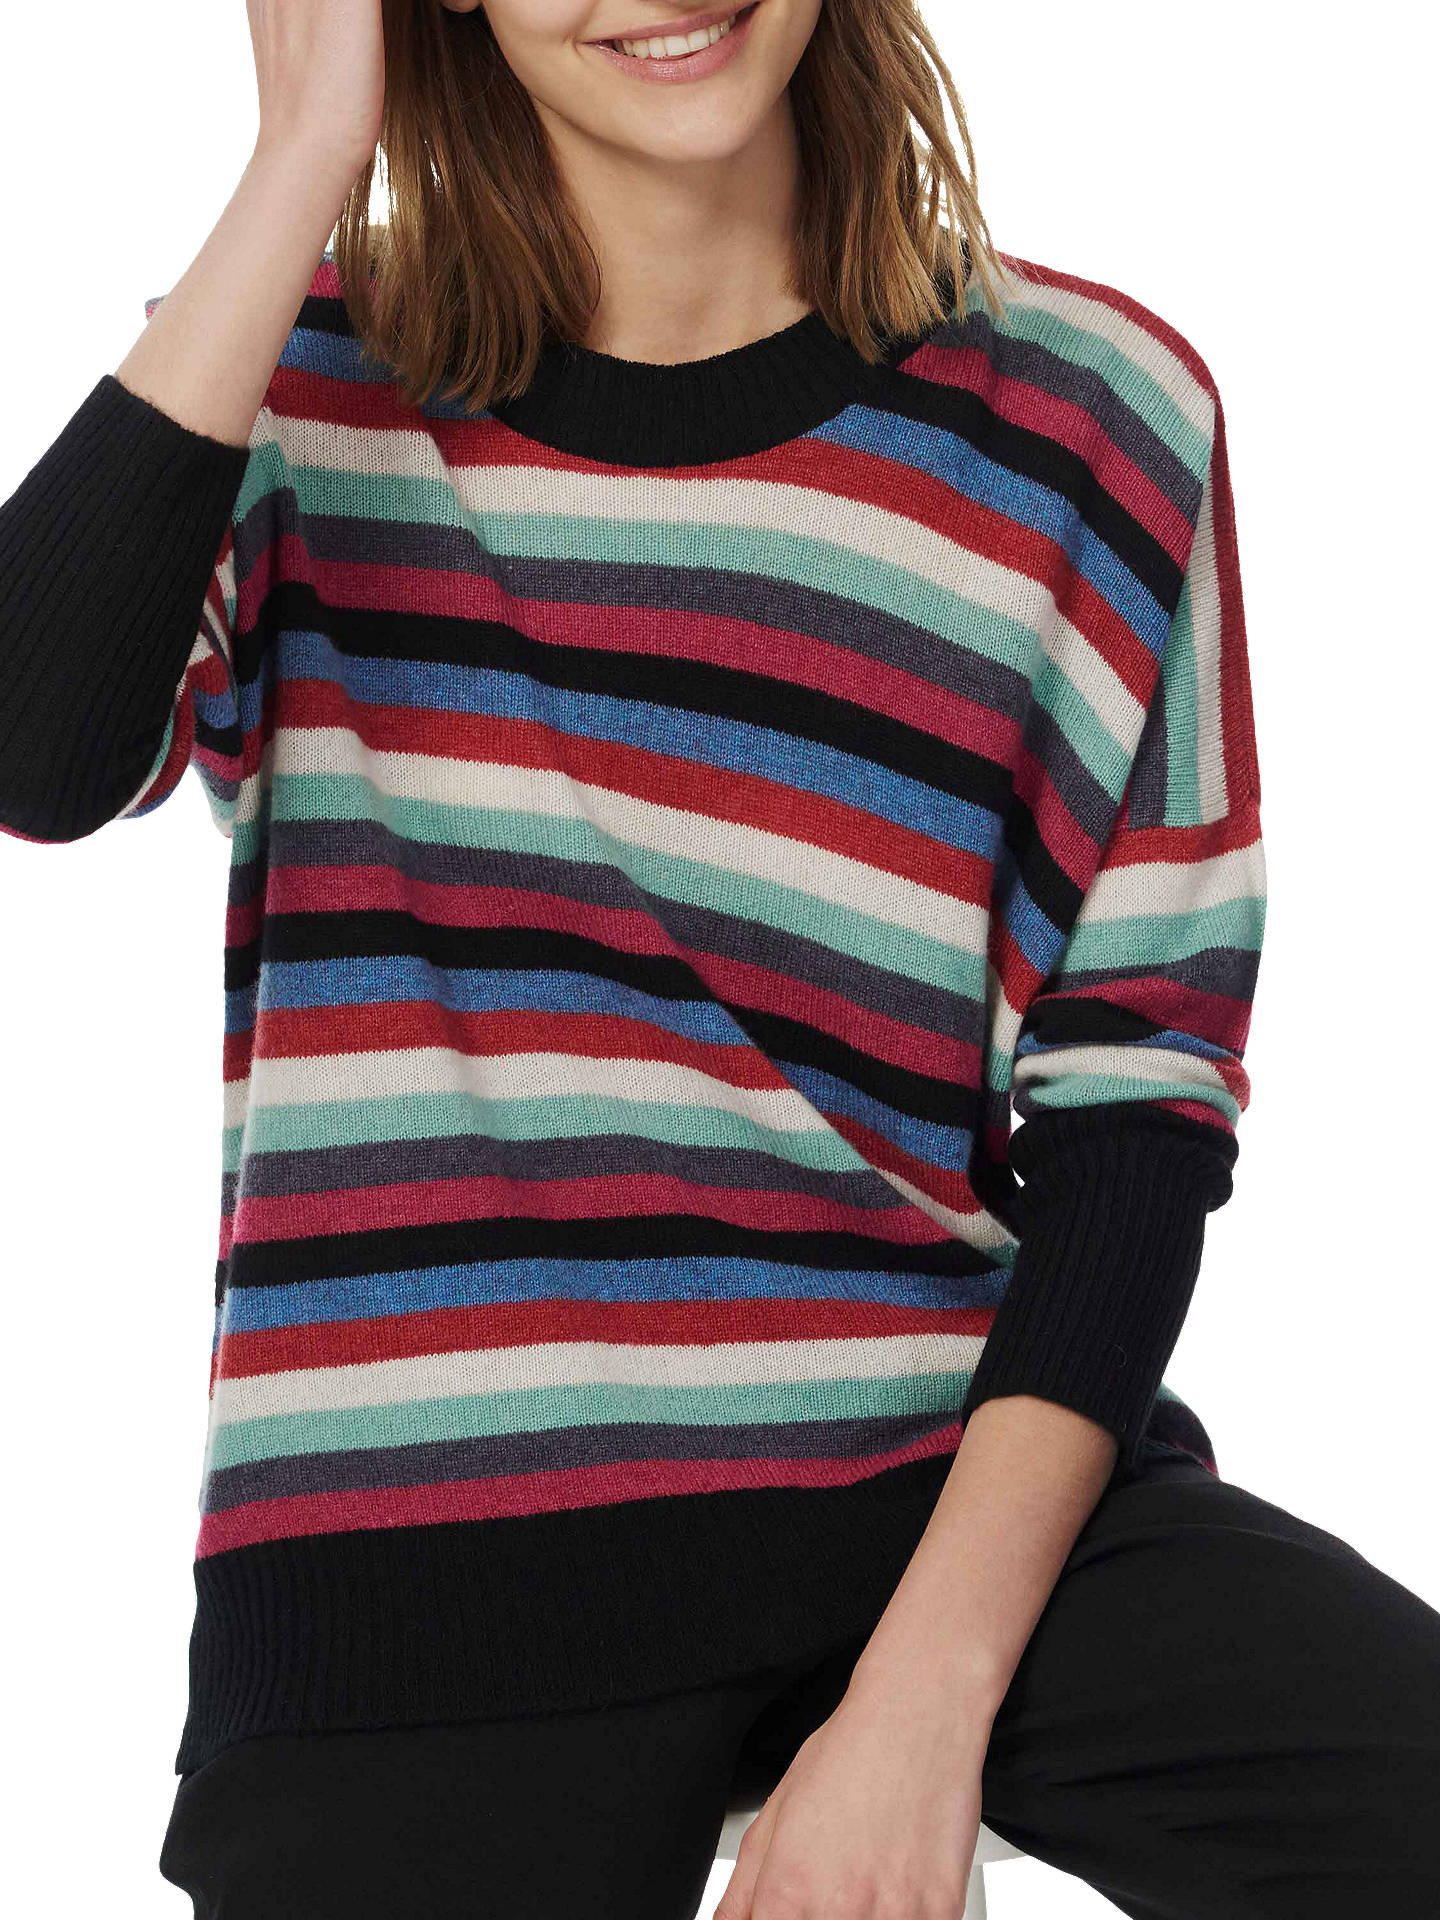 BuyBrora Cash Rainbow Stripe Cashmere Jumper, Multi, S-M Online at johnlewis.com